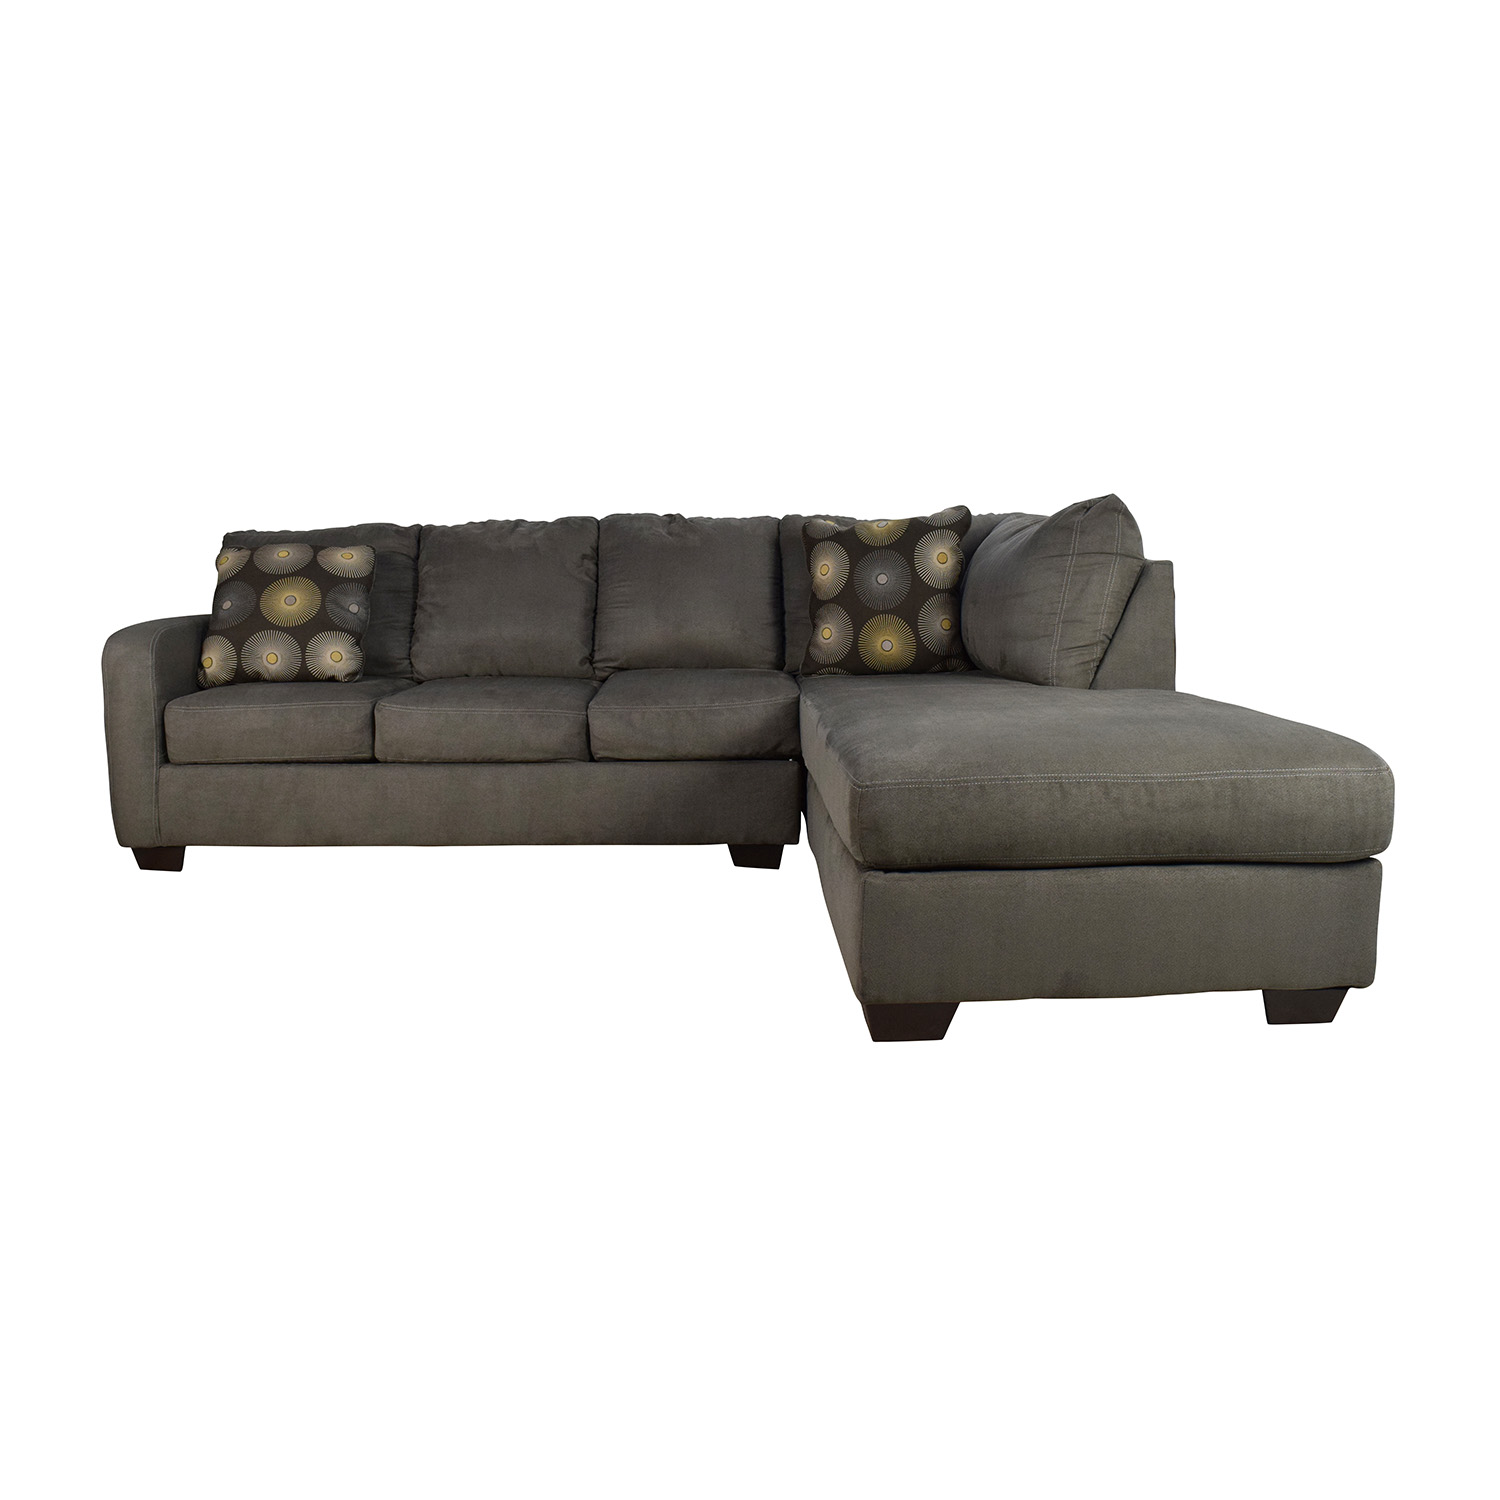 sofa chaise dark fabulous sectional supreme with of ideas design gray